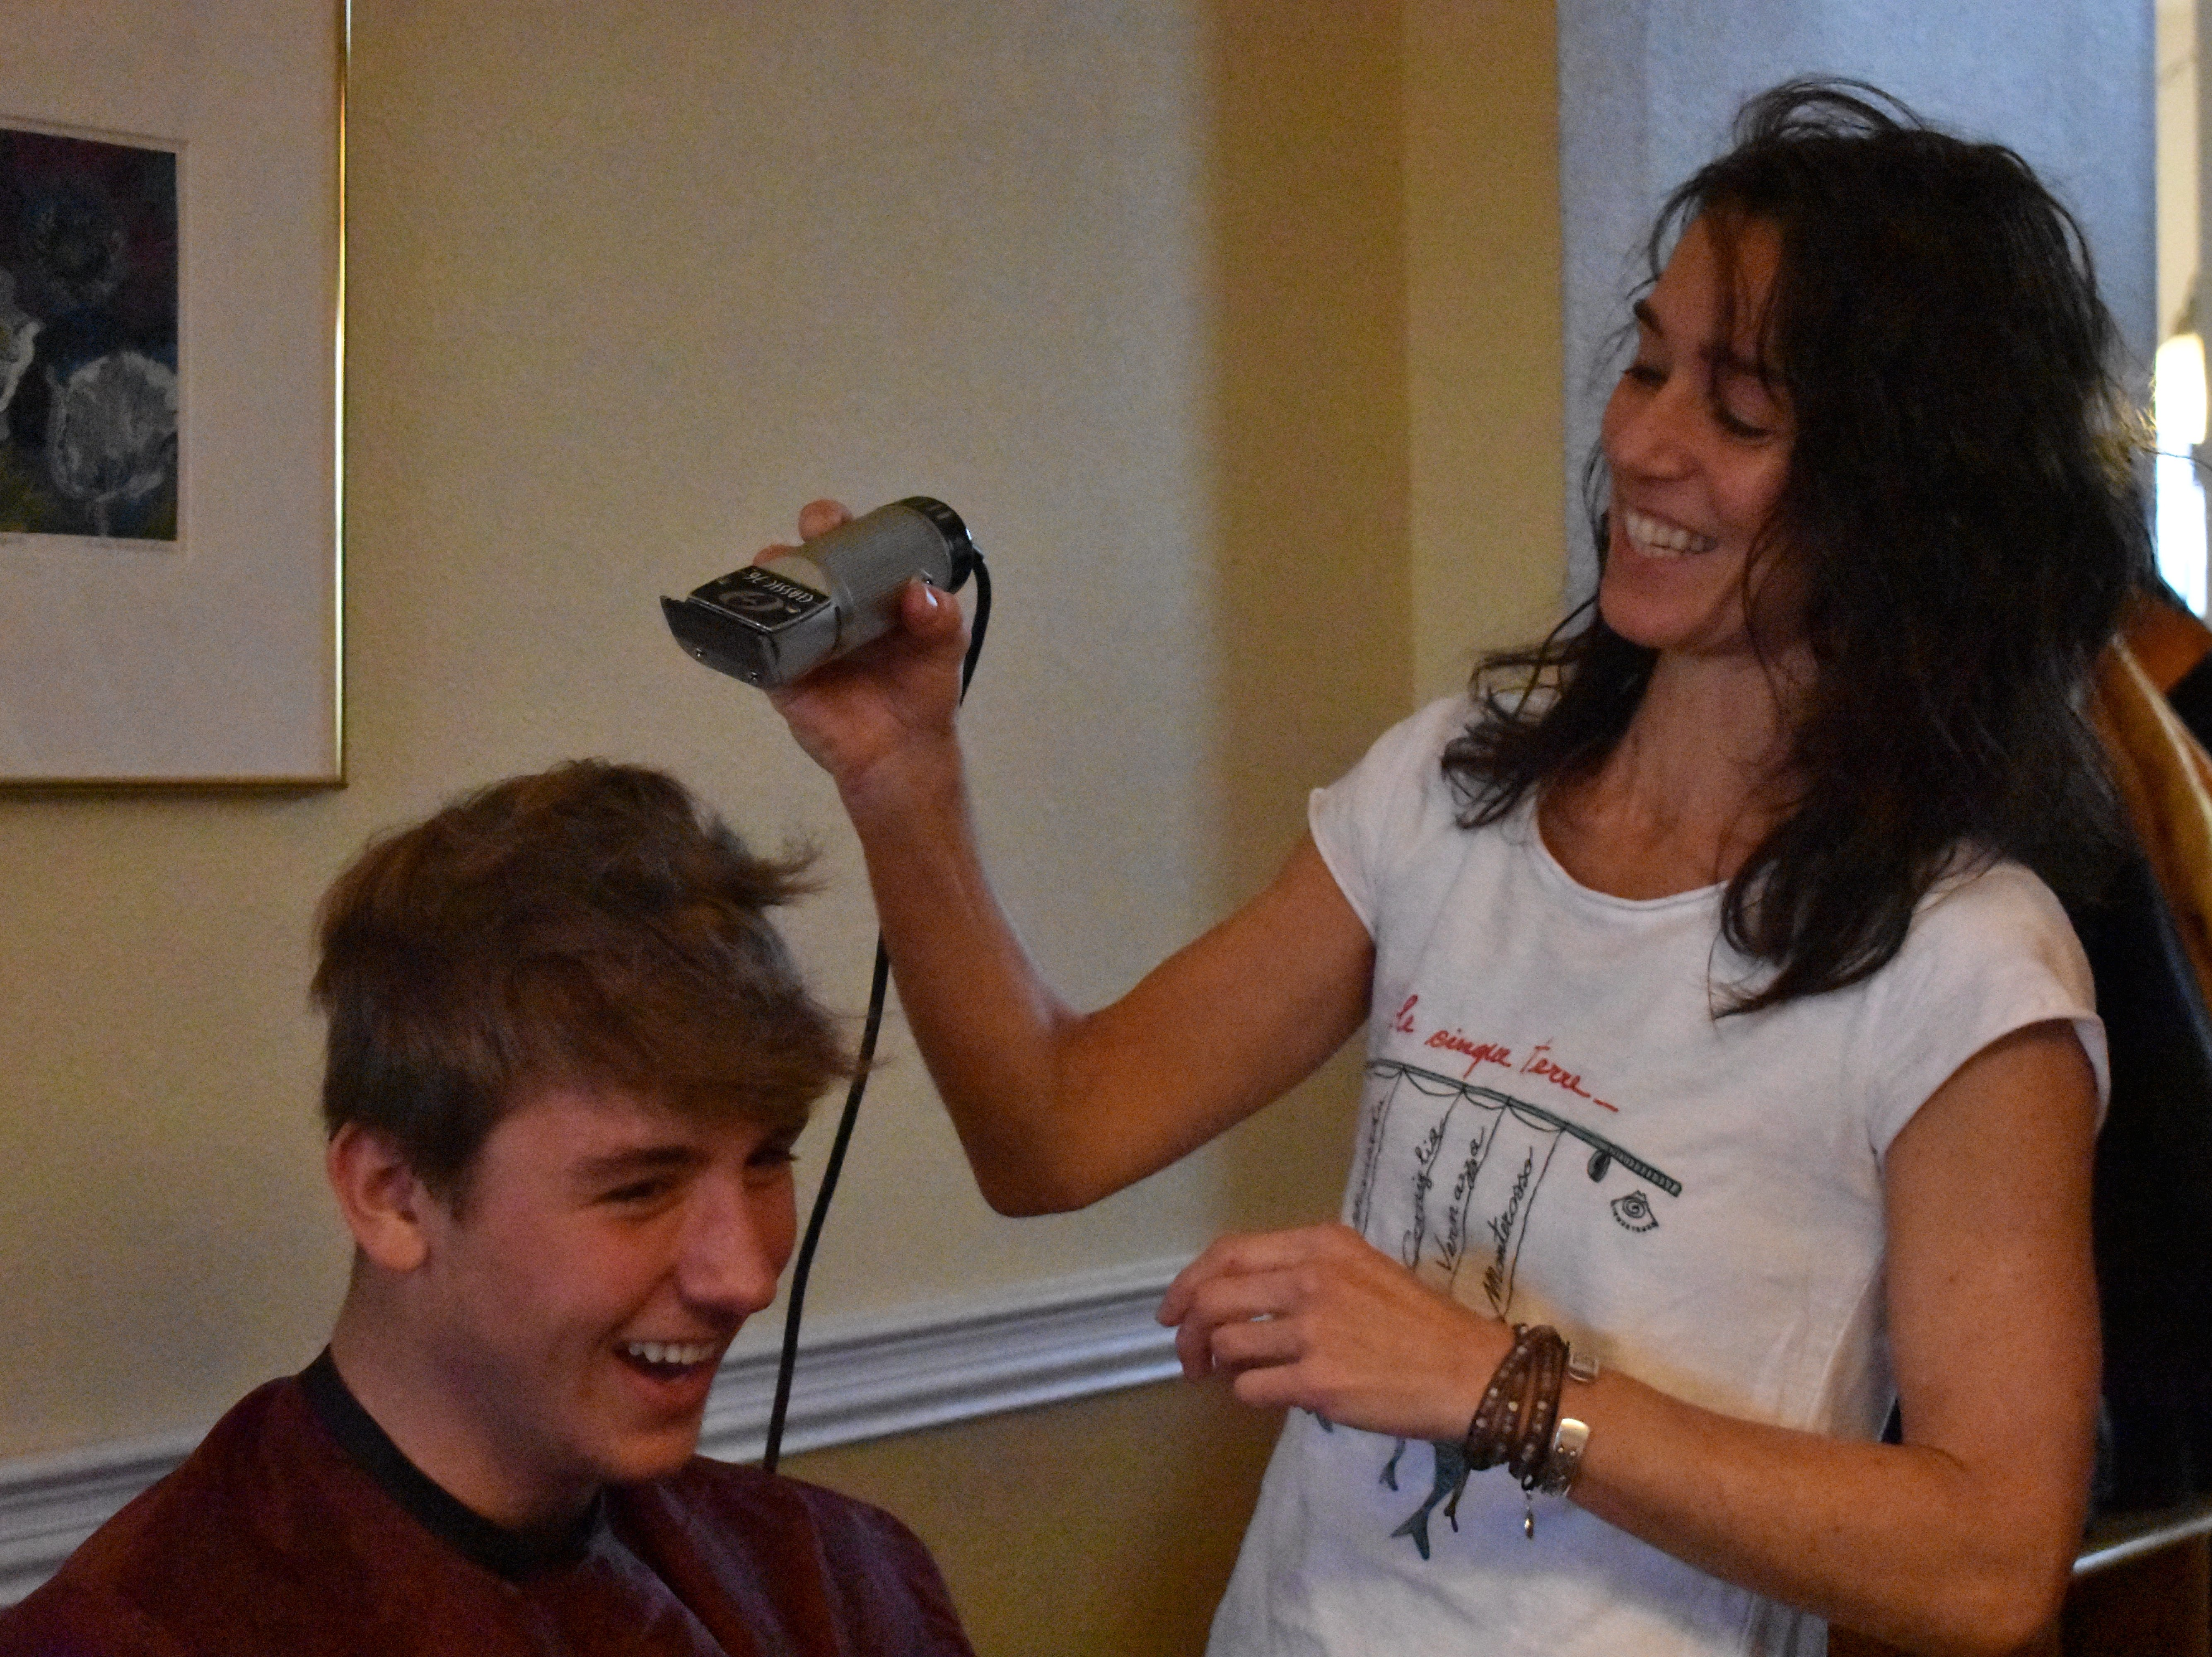 Margaret Urynowicz gets ready to shave son Joe's head in the family's Fort Collins house Dec. 31, 2018, in support of teammate Carter Edgerely, who was recently diagnosed with bone cancer.